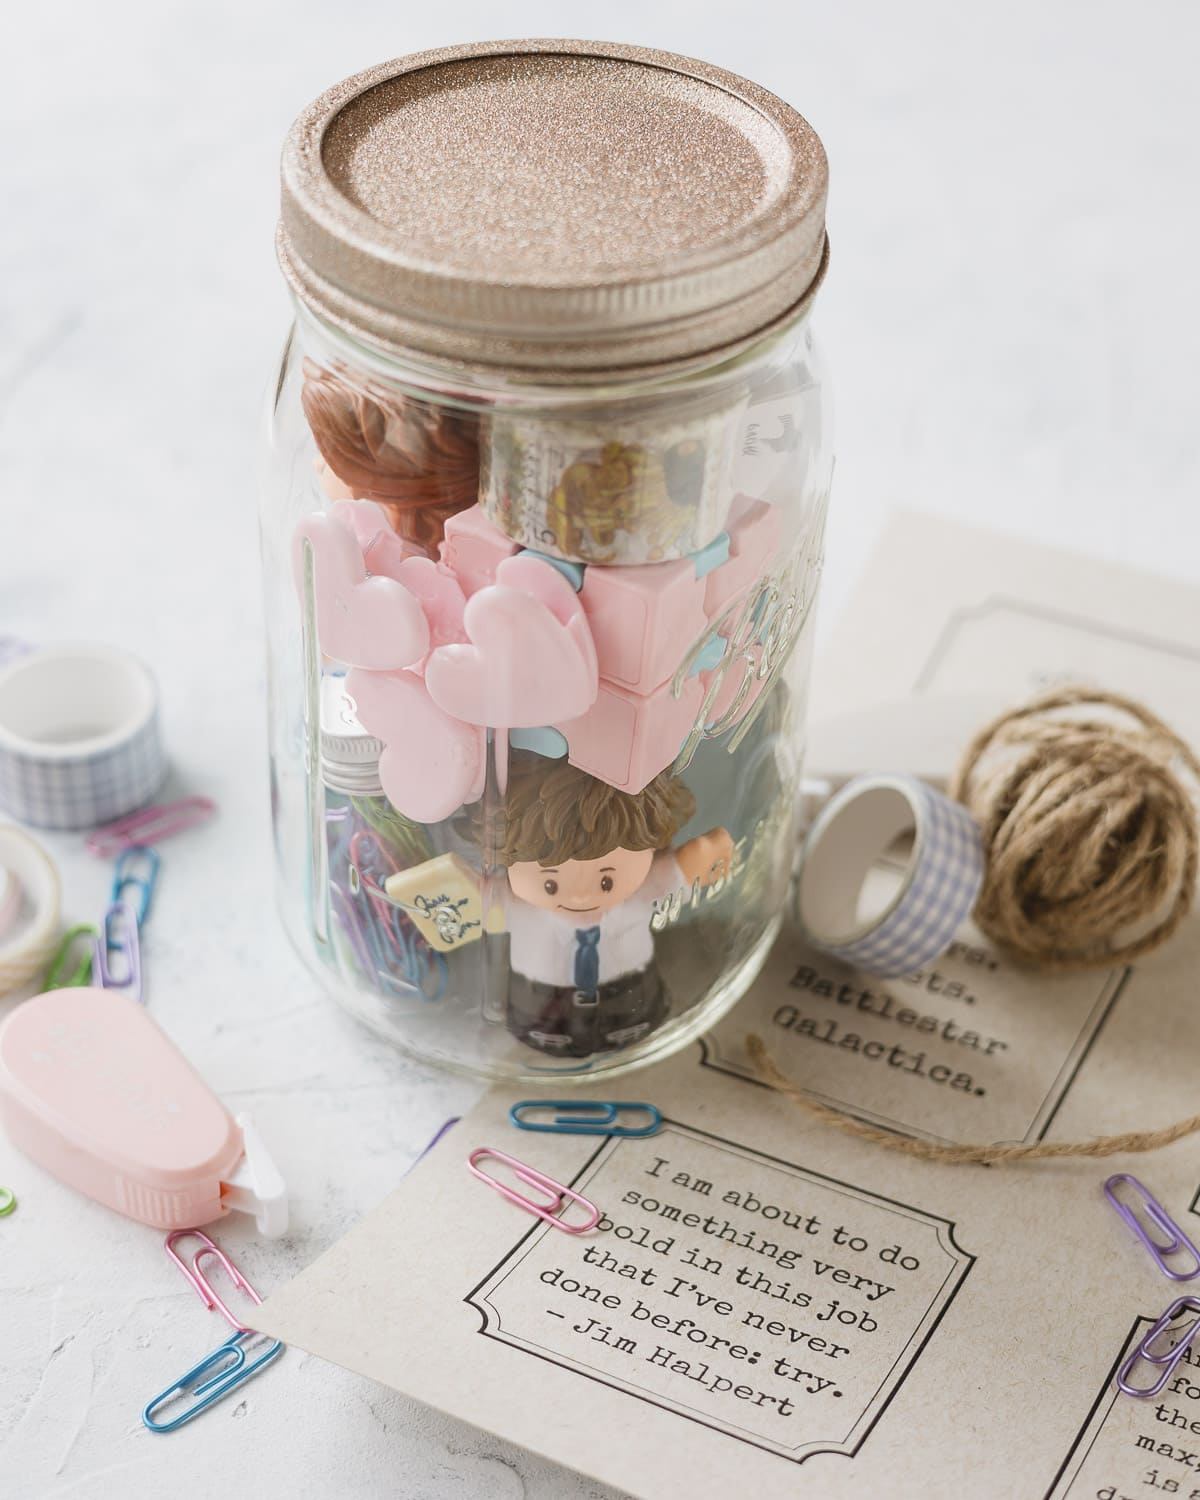 Gift tags, twine, washi tape, corrector tape, and other office supplies packed into a mason jar with a glittery lid.